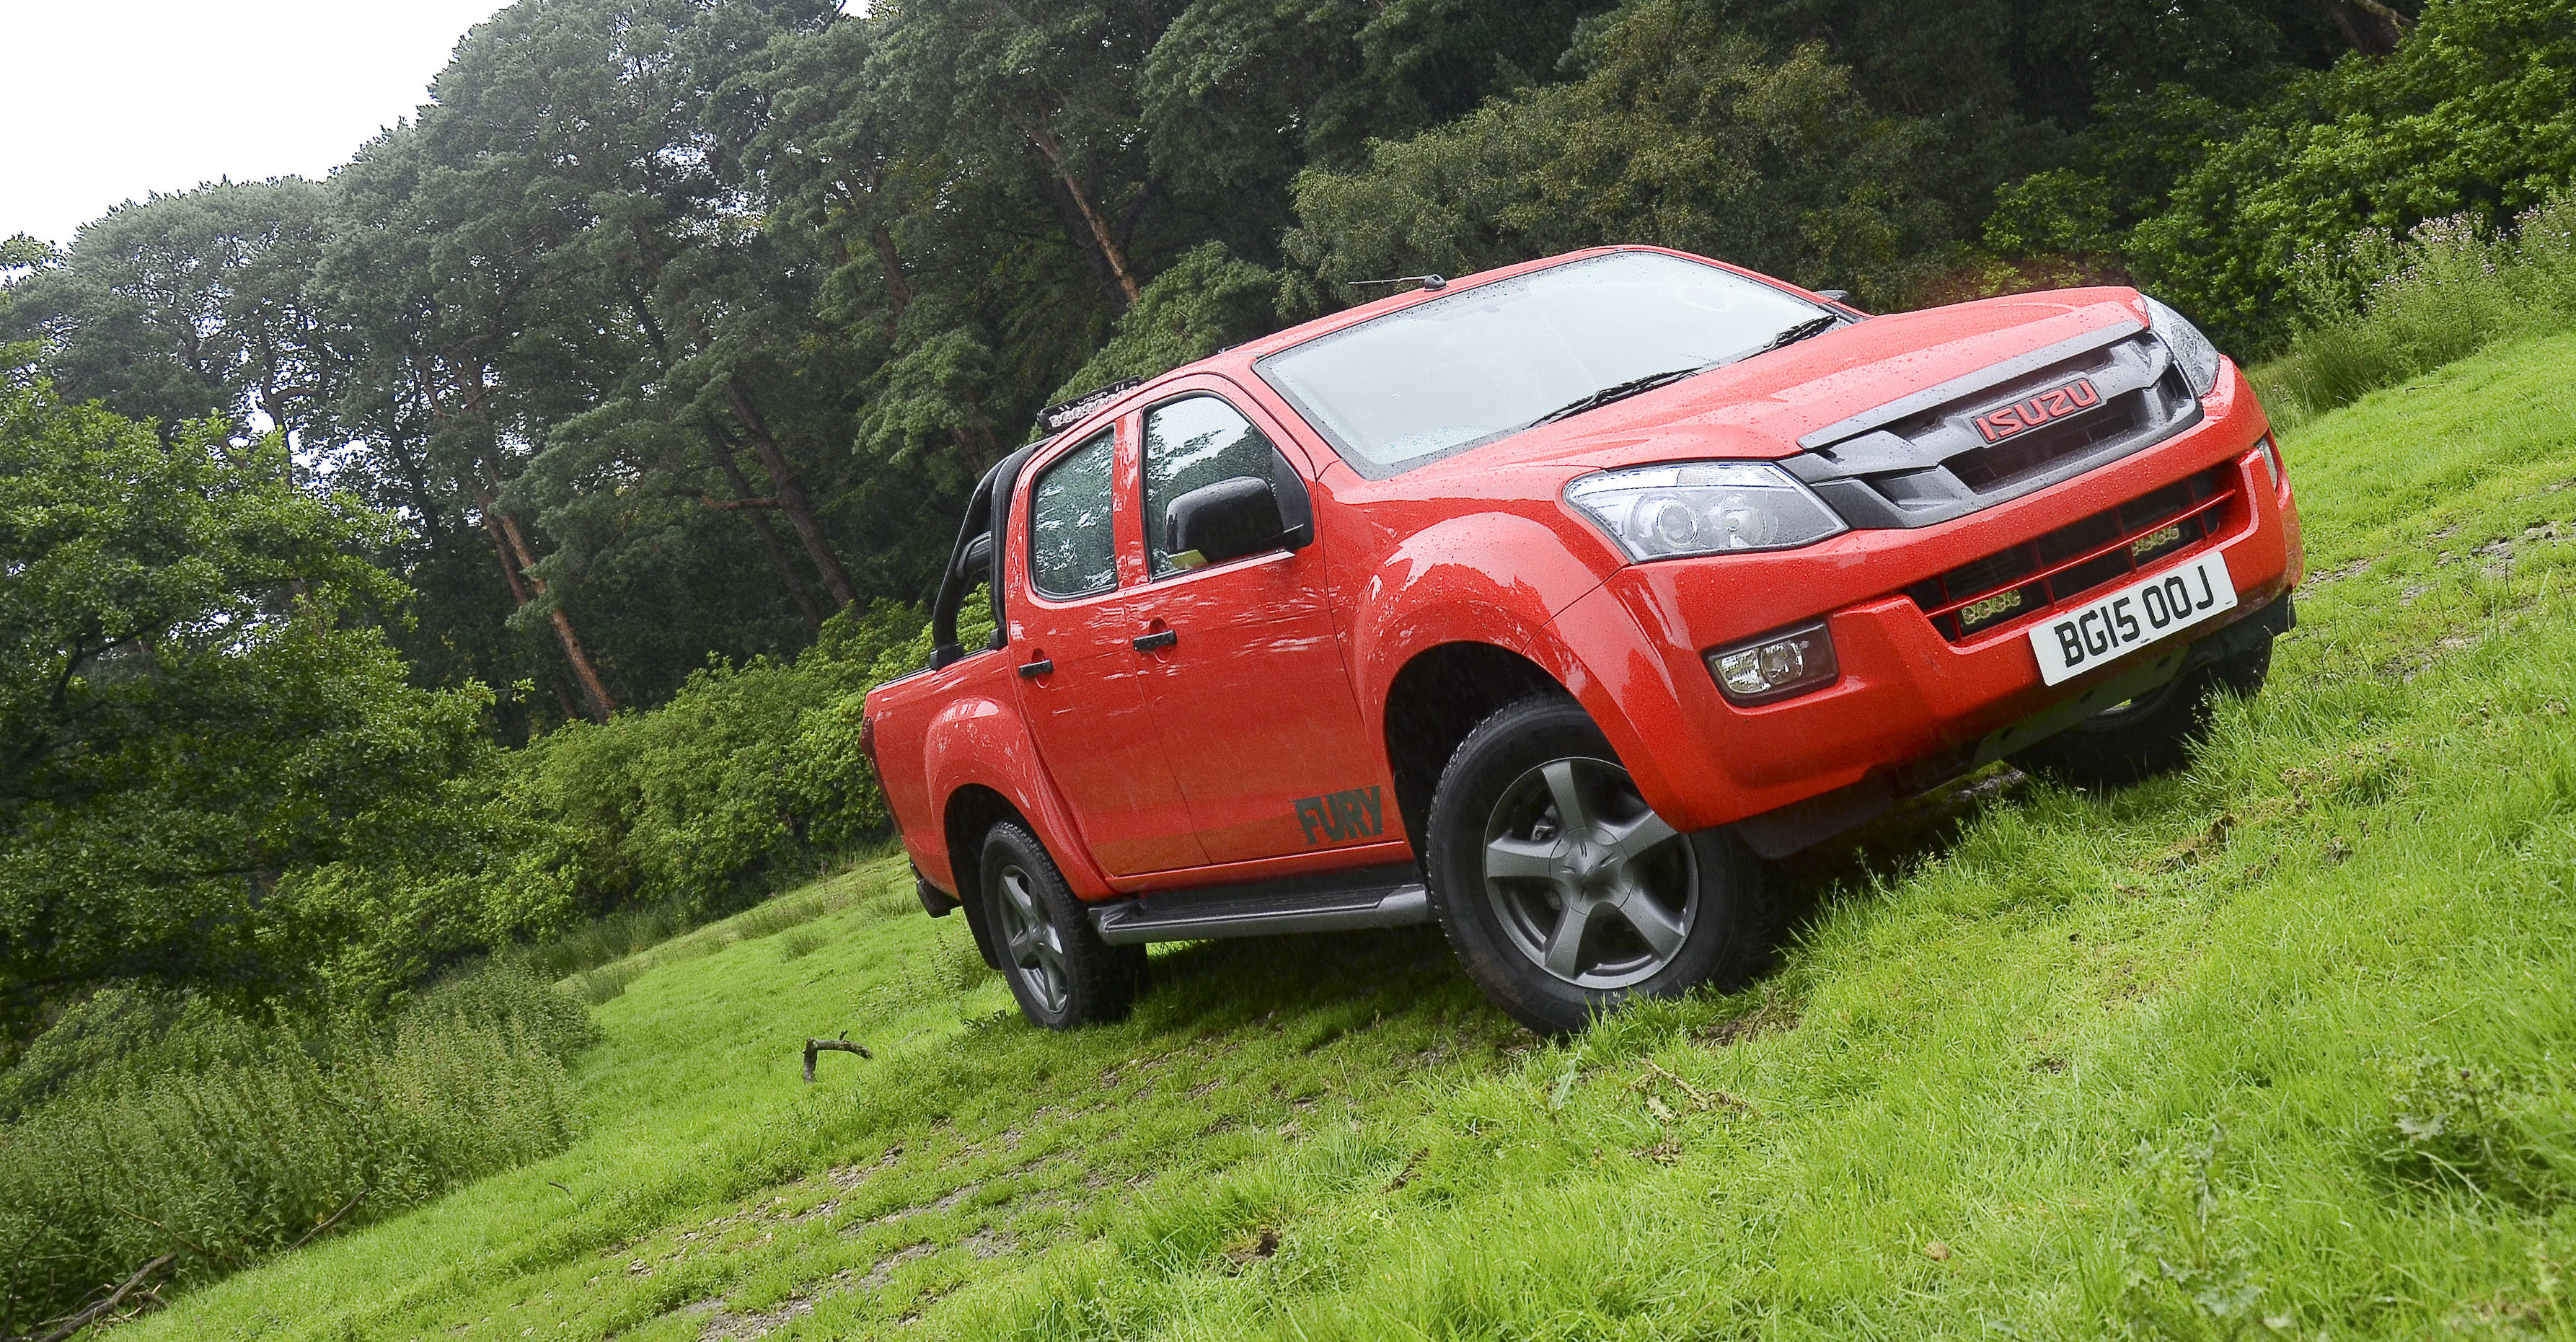 Isuzu's D-Max Fury is as in your face as it gets. Isuzu D-Max Fury-MY16. Image: Mark Stone